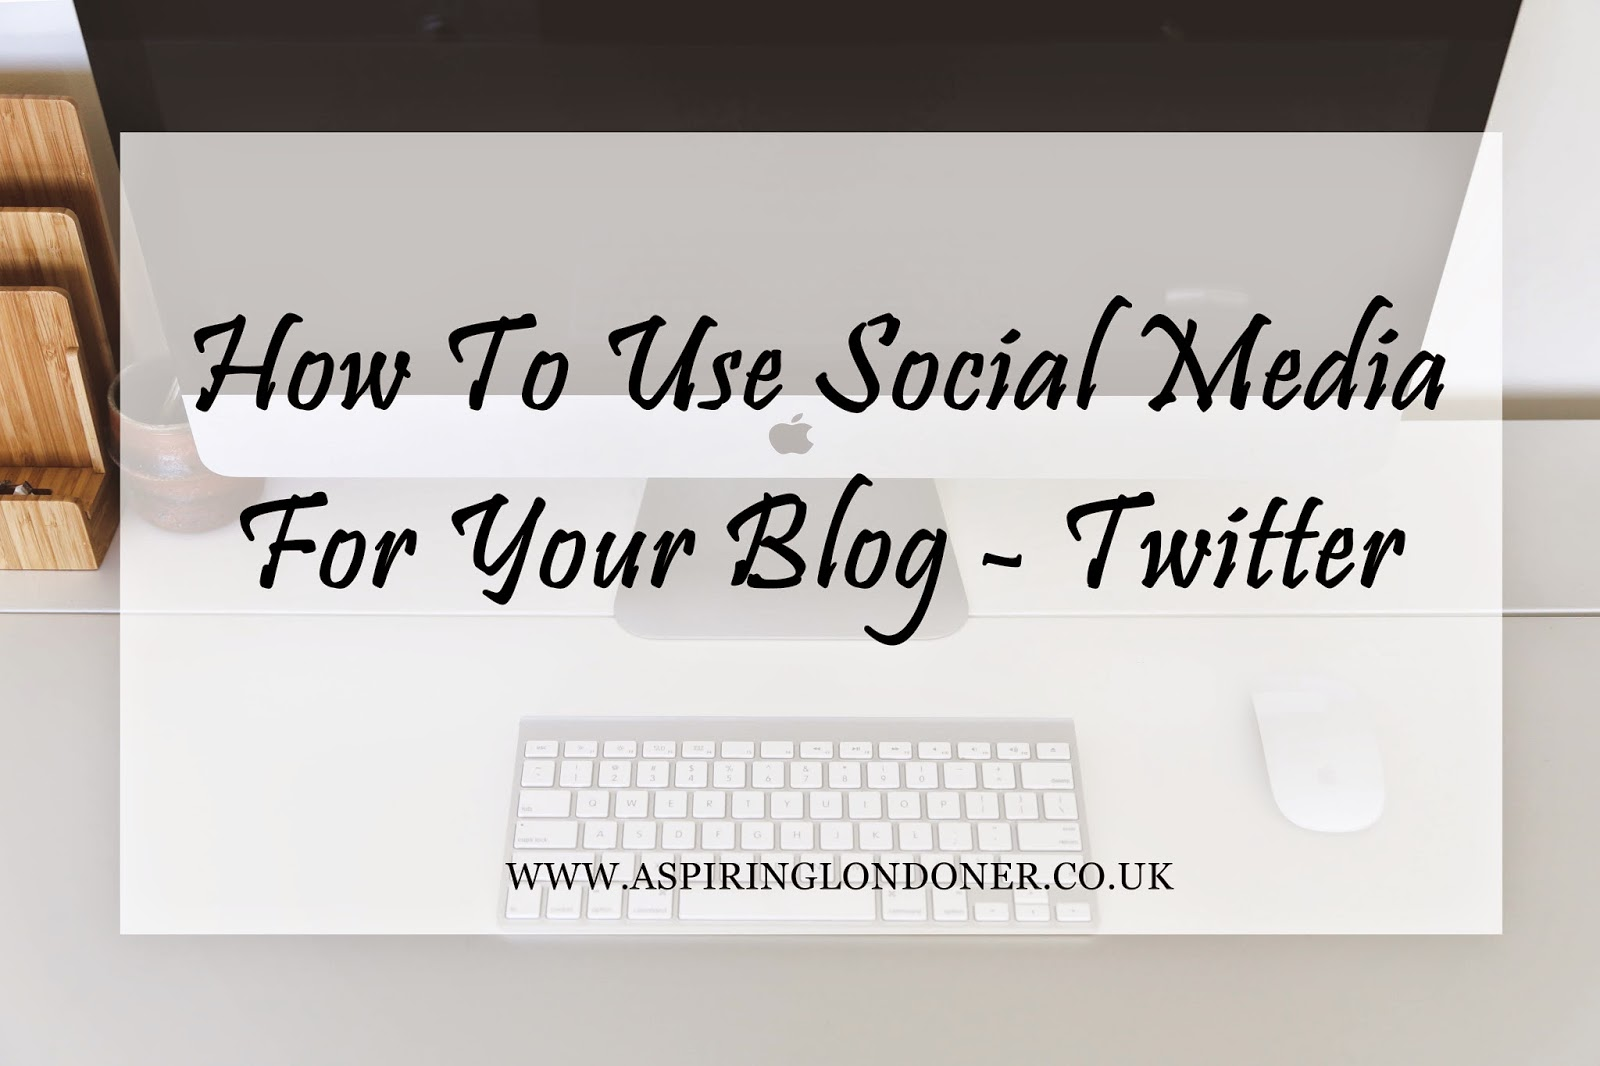 How To Use Social Media For Your Blog Twitter - Aspiring Londoner